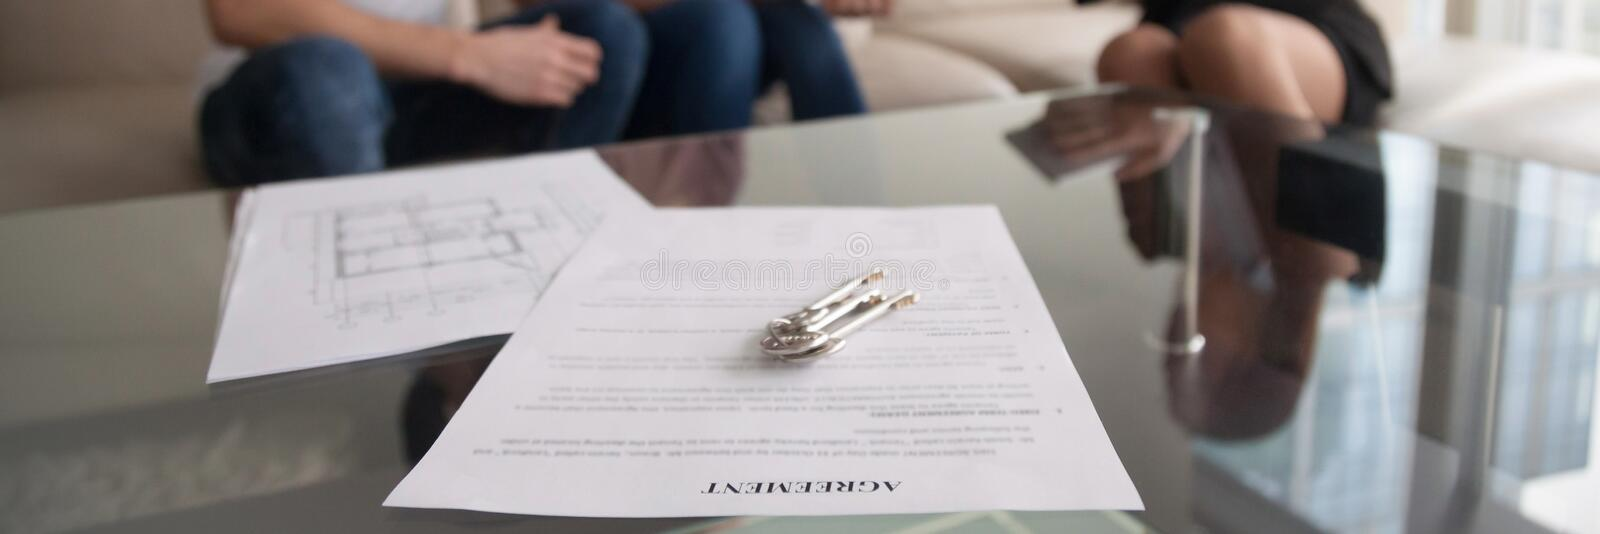 Horizontal image couple meets with realtor for signing rental agreement royalty free stock image